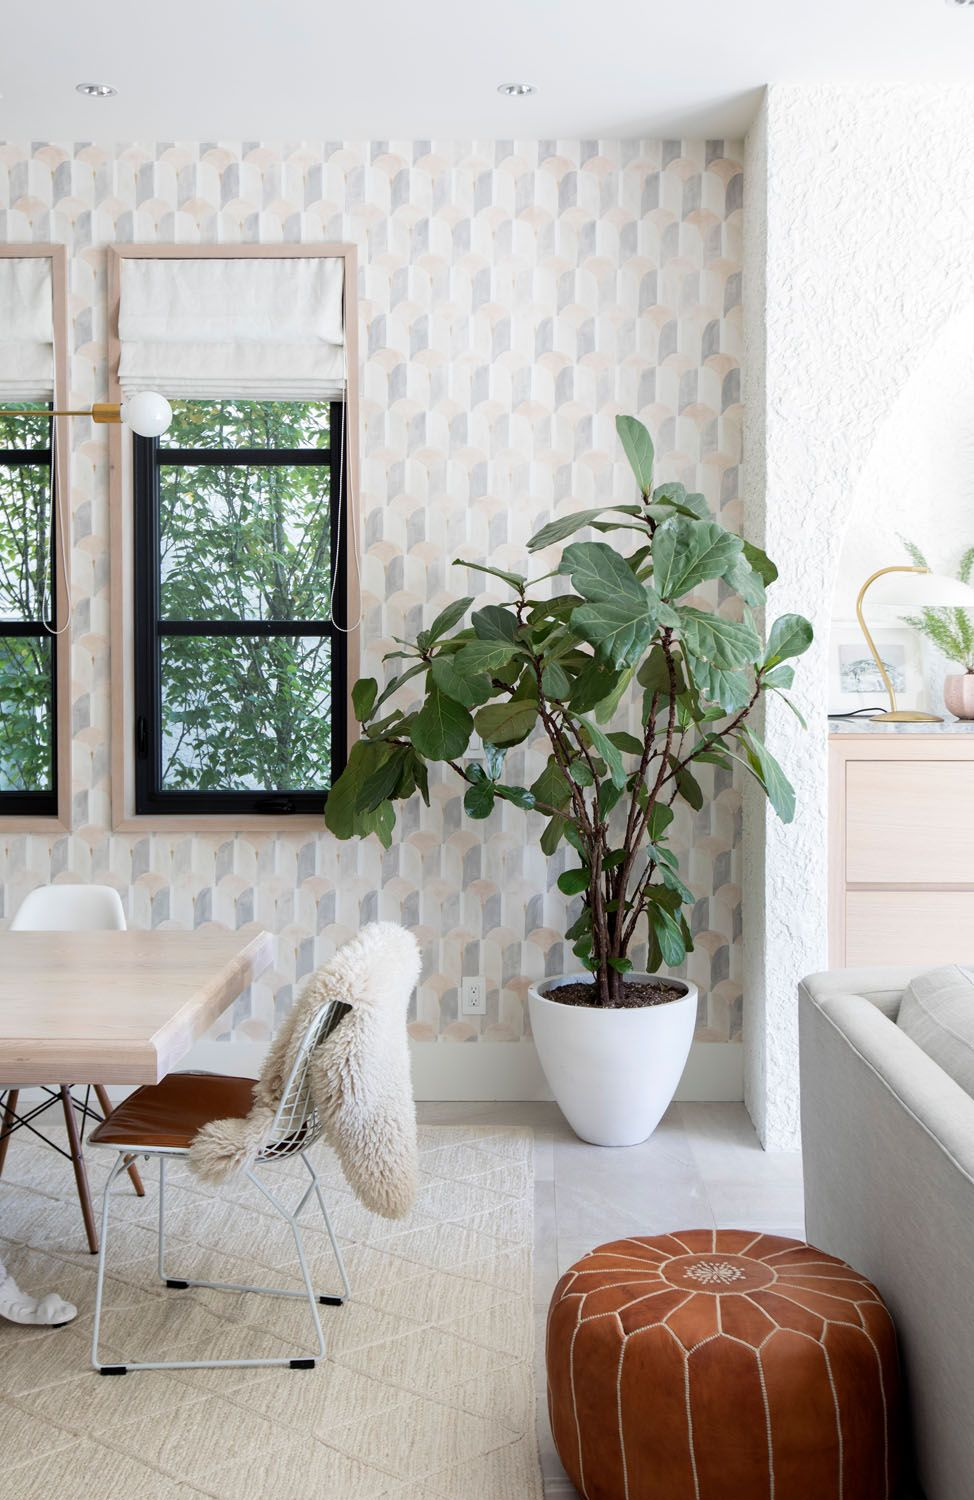 Trend From The Issue Statement Walls Rue Statement Walls Living Room Minimalist Home Decor Statement Wall